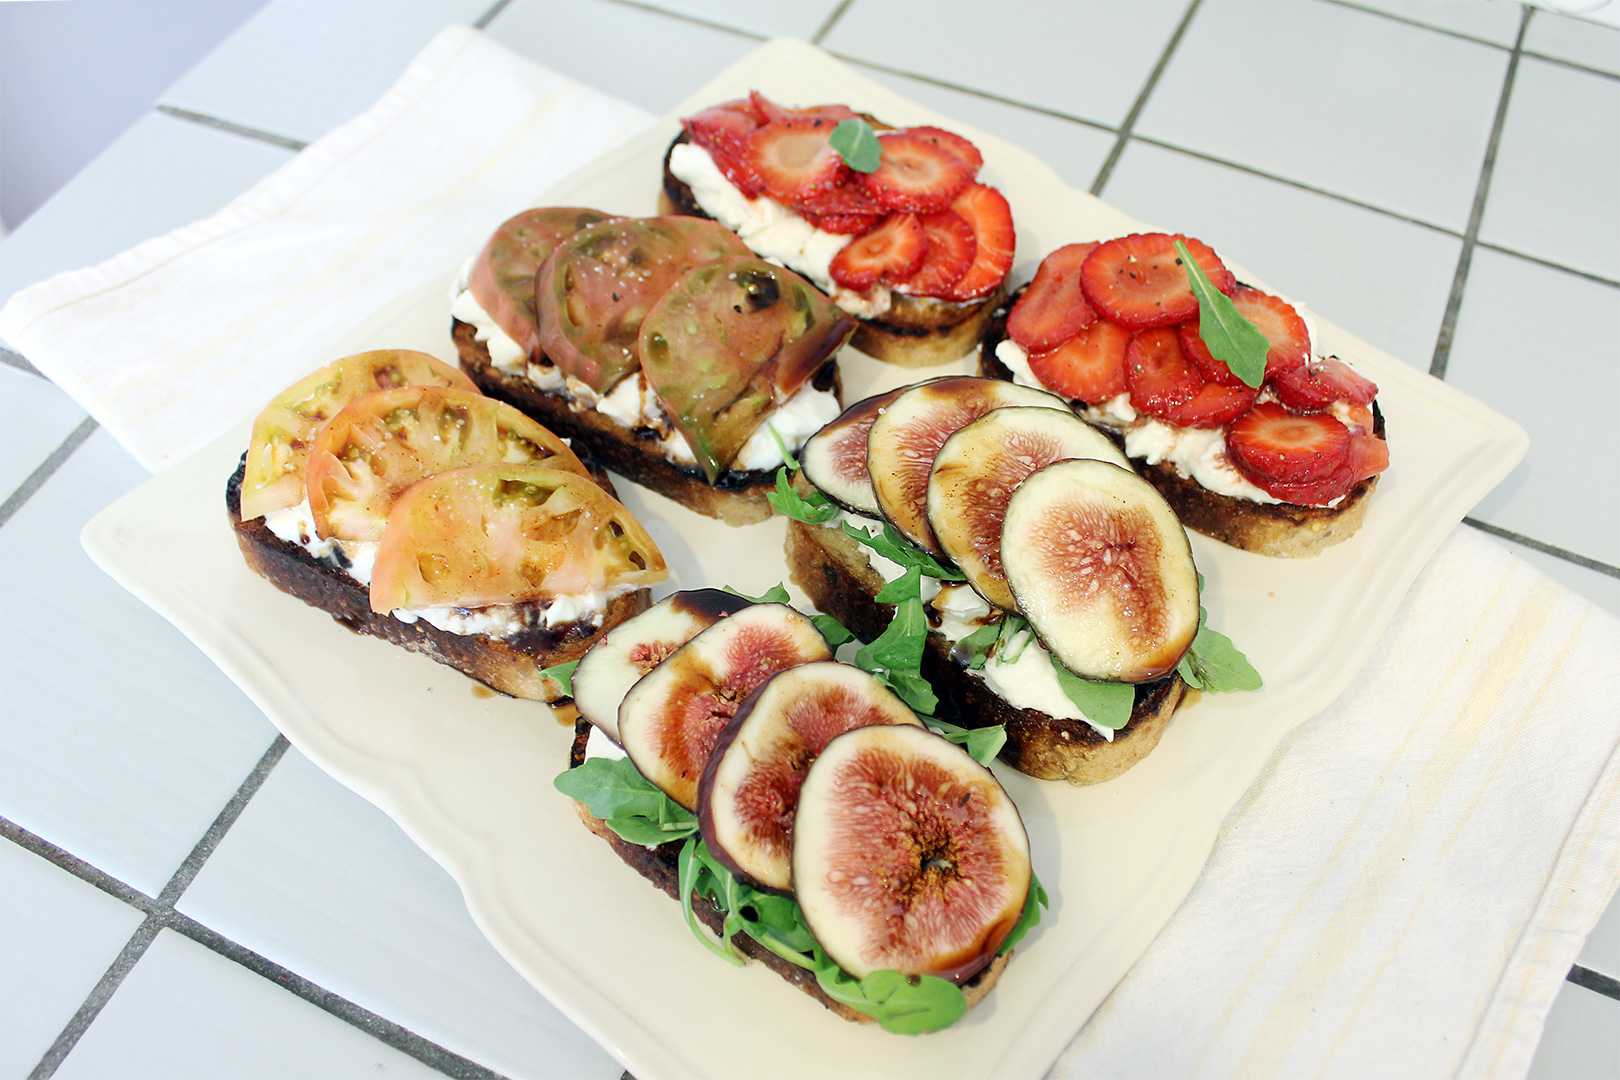 1. Burrata Toast with figs, arugula and balsamic glaze 2. Burrata Toast with strawberries and balsamic glaze 3. Burrata Toast with heirloom tomatoes, basil leaves, and balsamic glaze